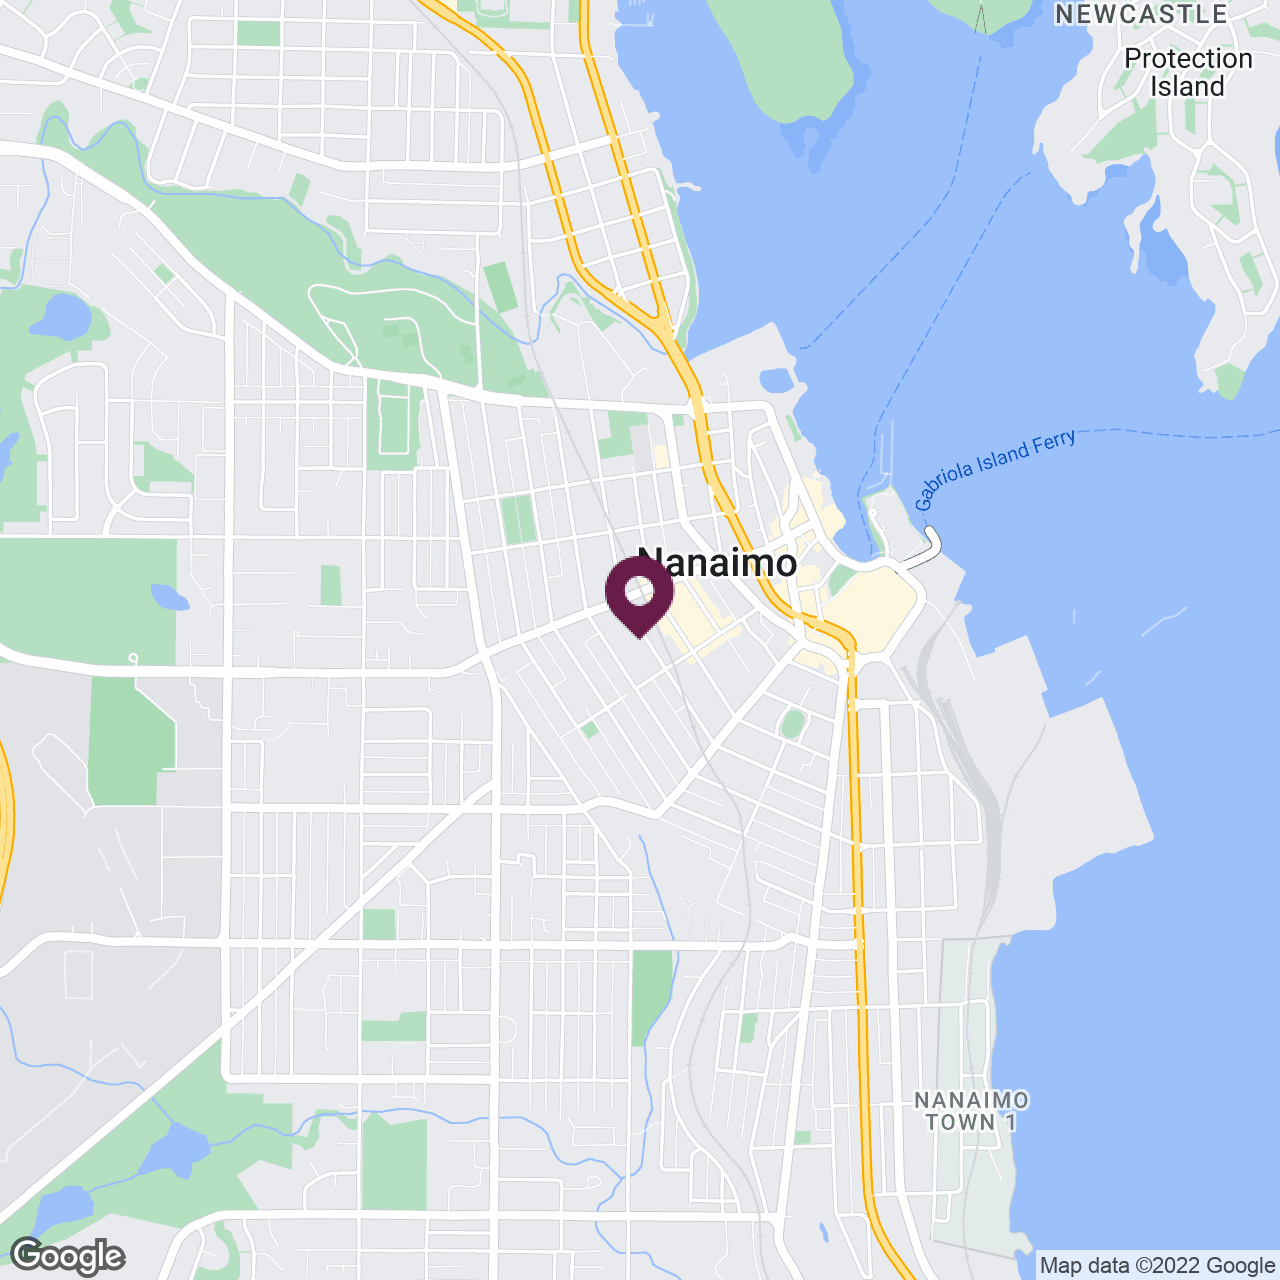 Google Maps static image of Nanaimo